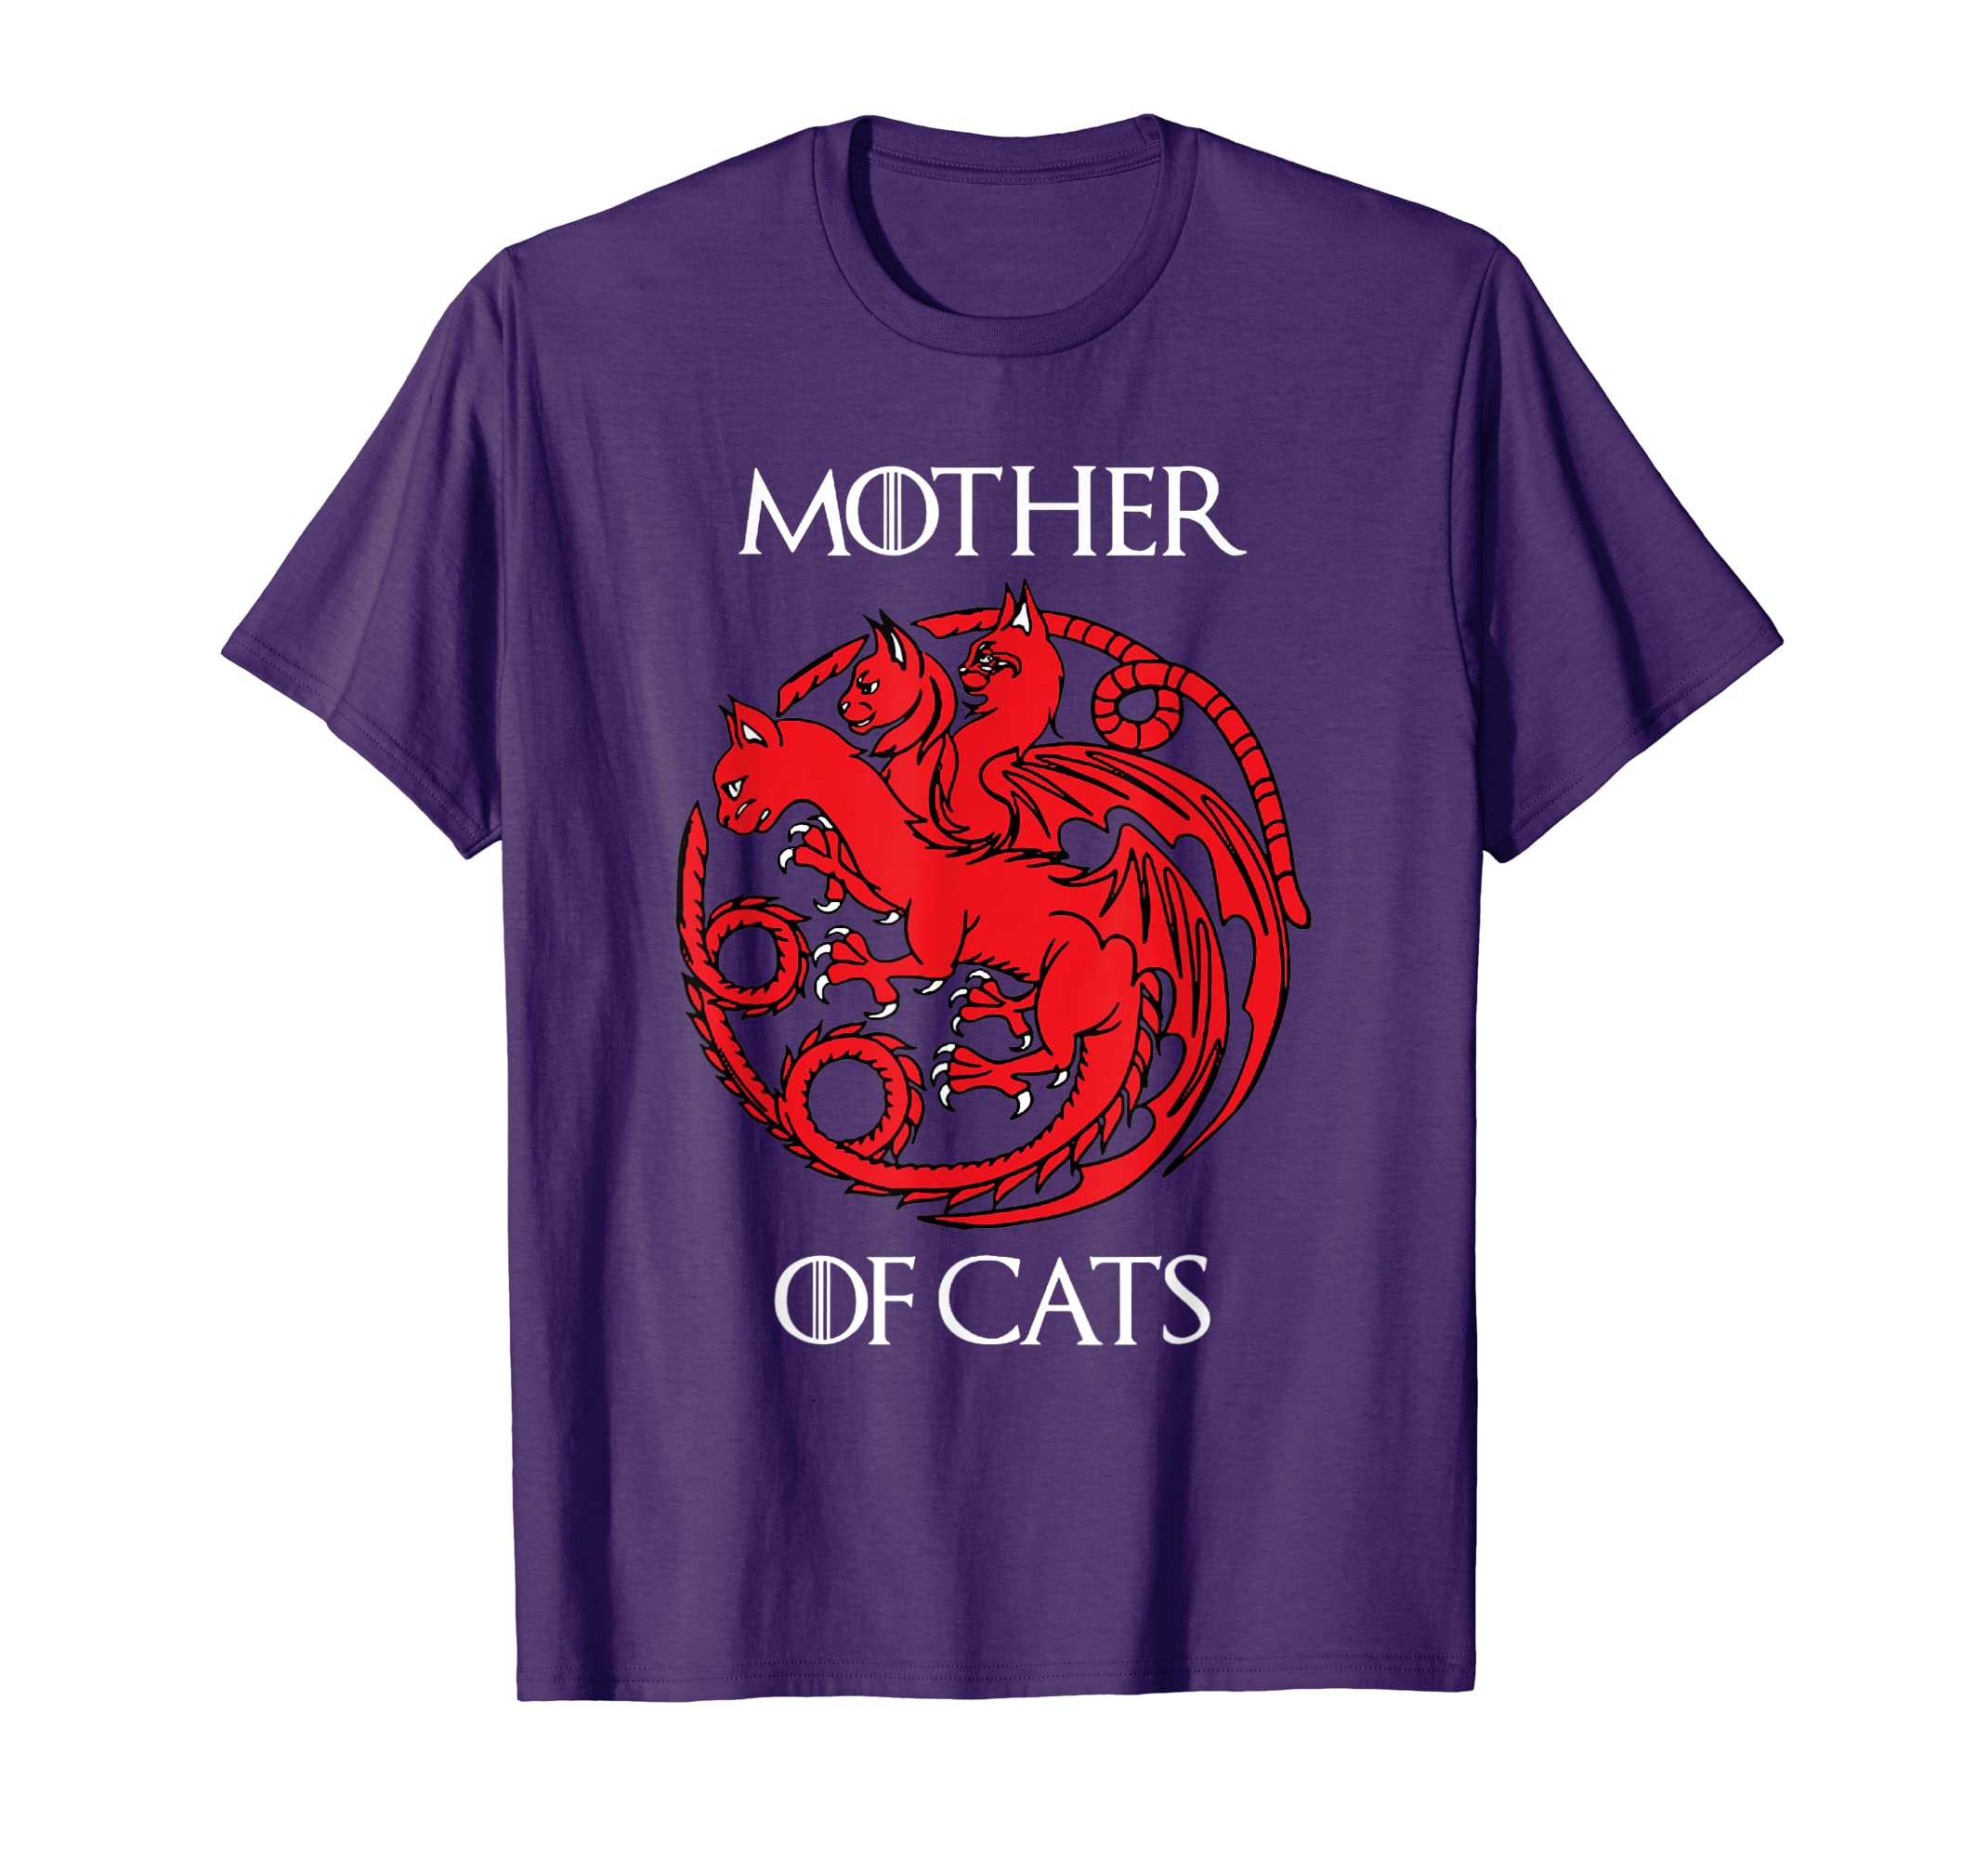 62a478f5 Amazon.com: Cat Lovers Shirt - Mother of Cats Hot 2019 T-Shirt: Clothing